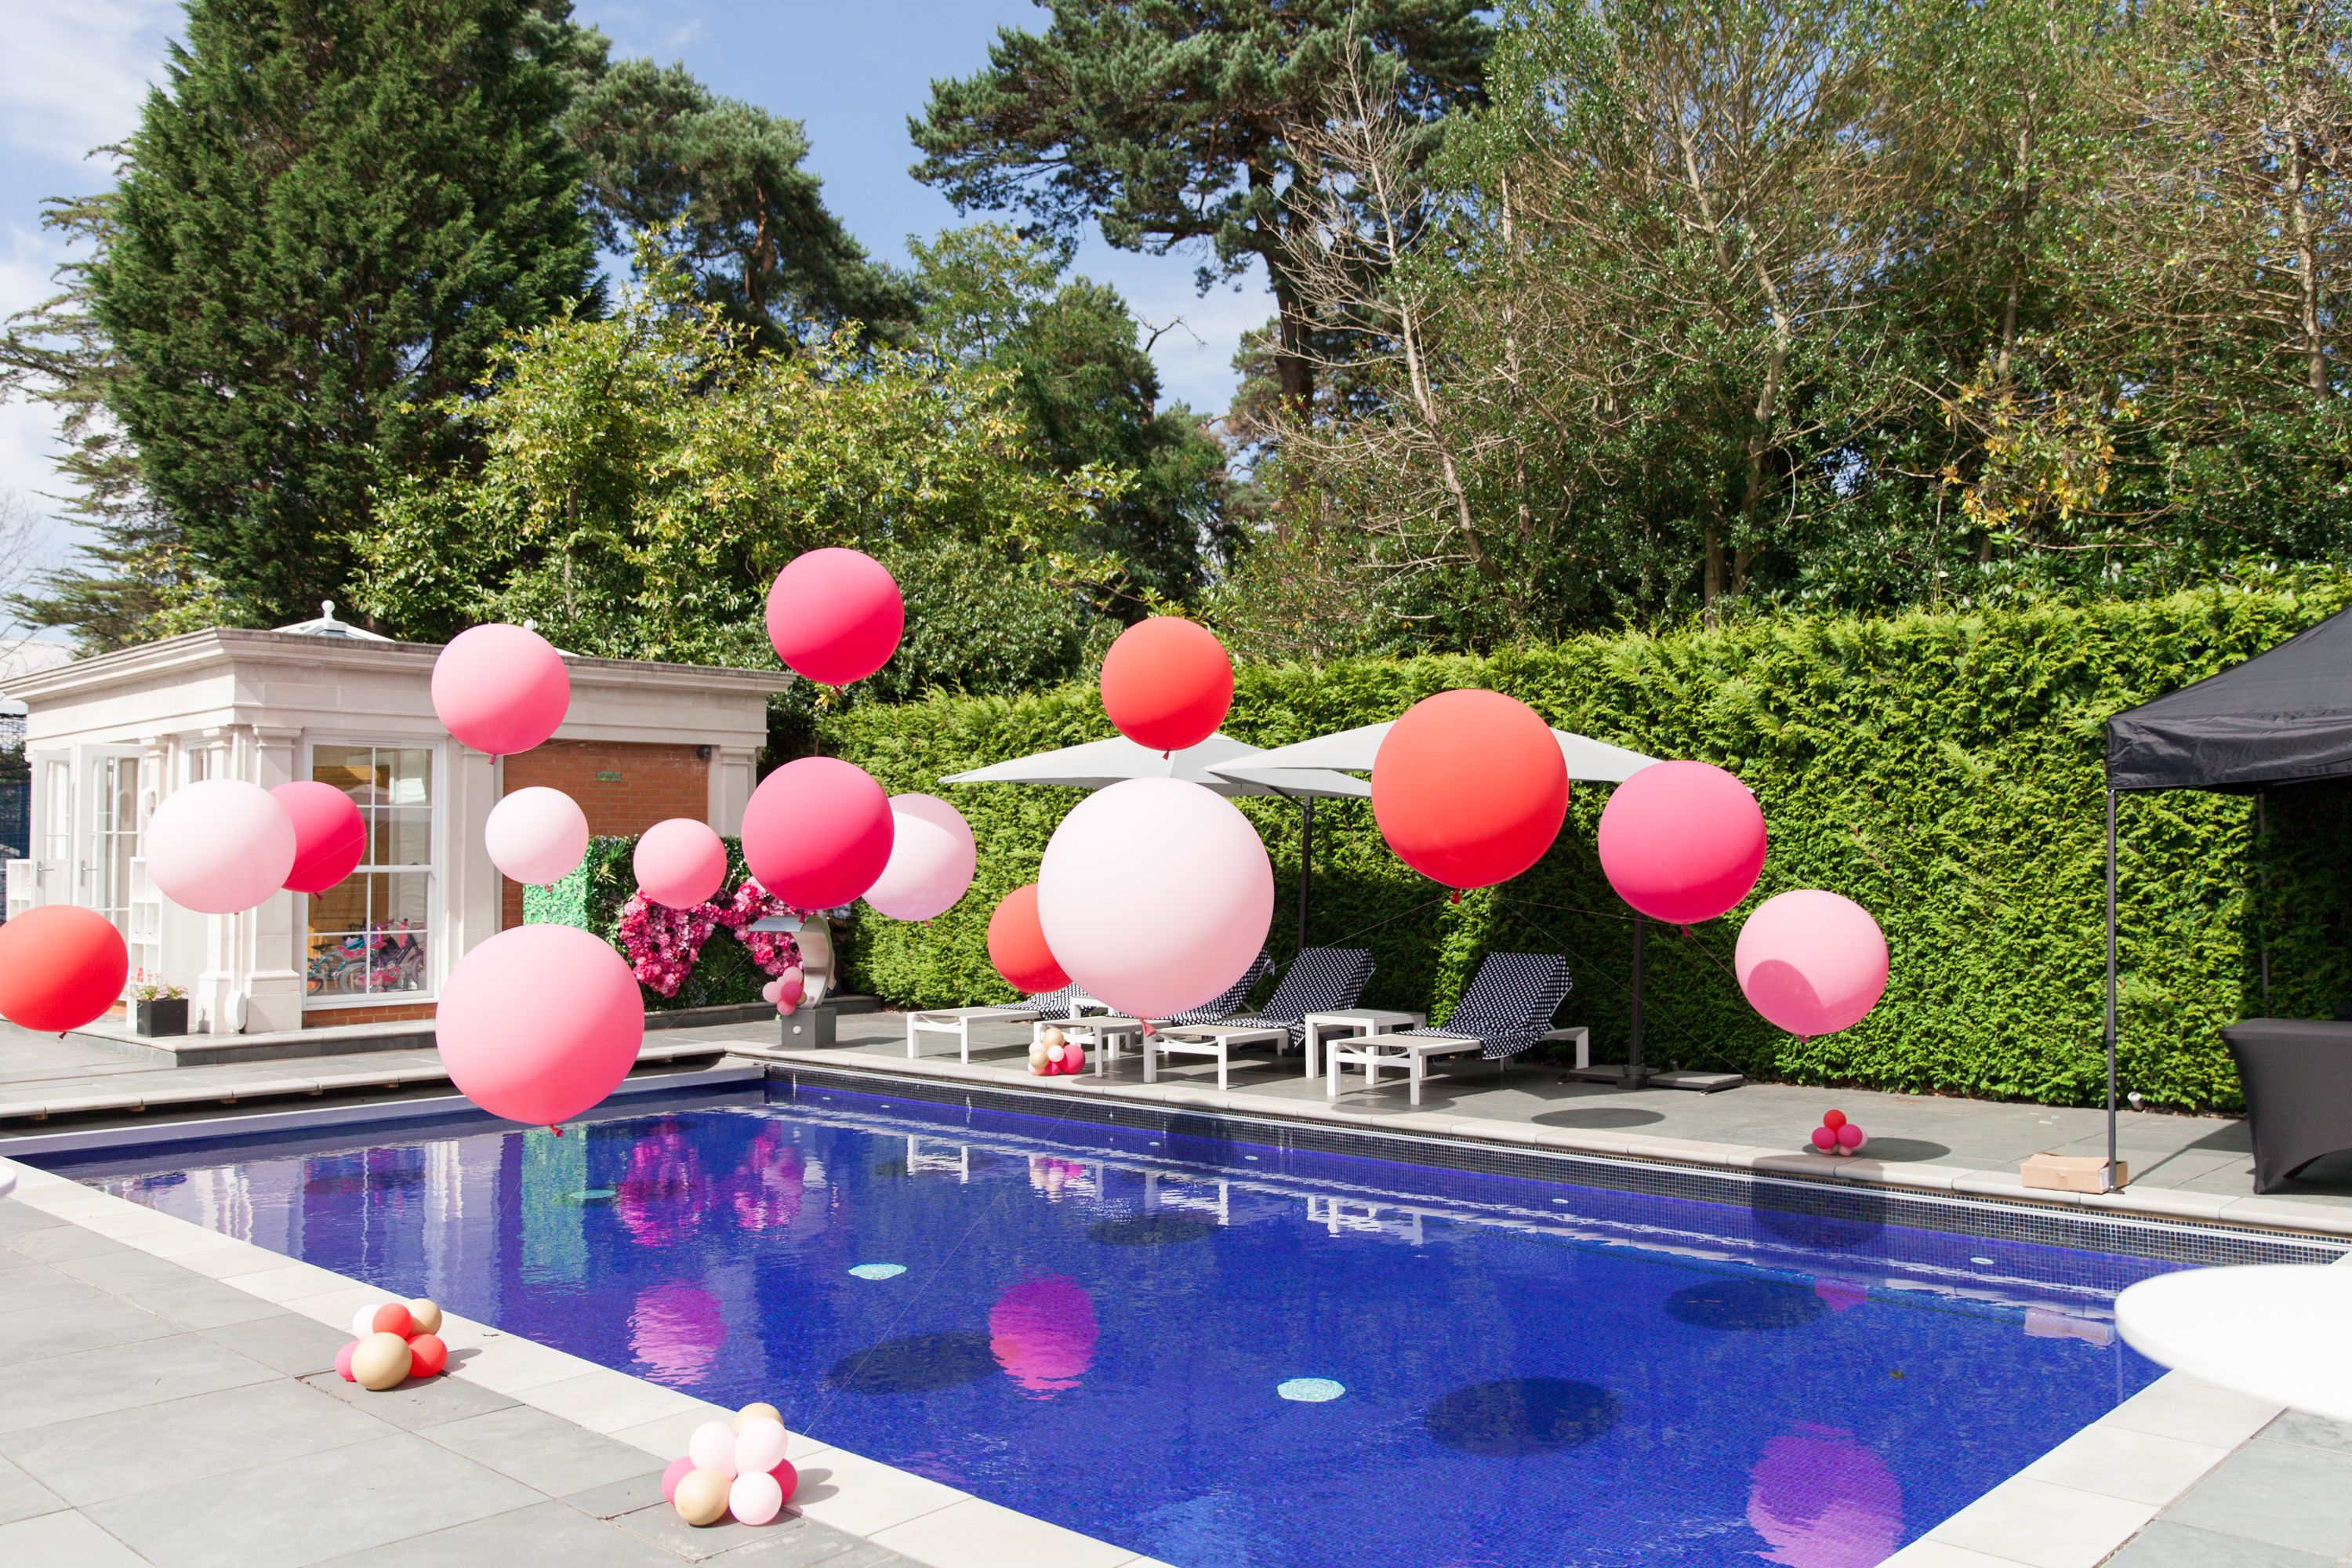 Pink Raspberry Pool Party Balloon Installation Pool Party Decorations Pool Birthday Party Pool Party